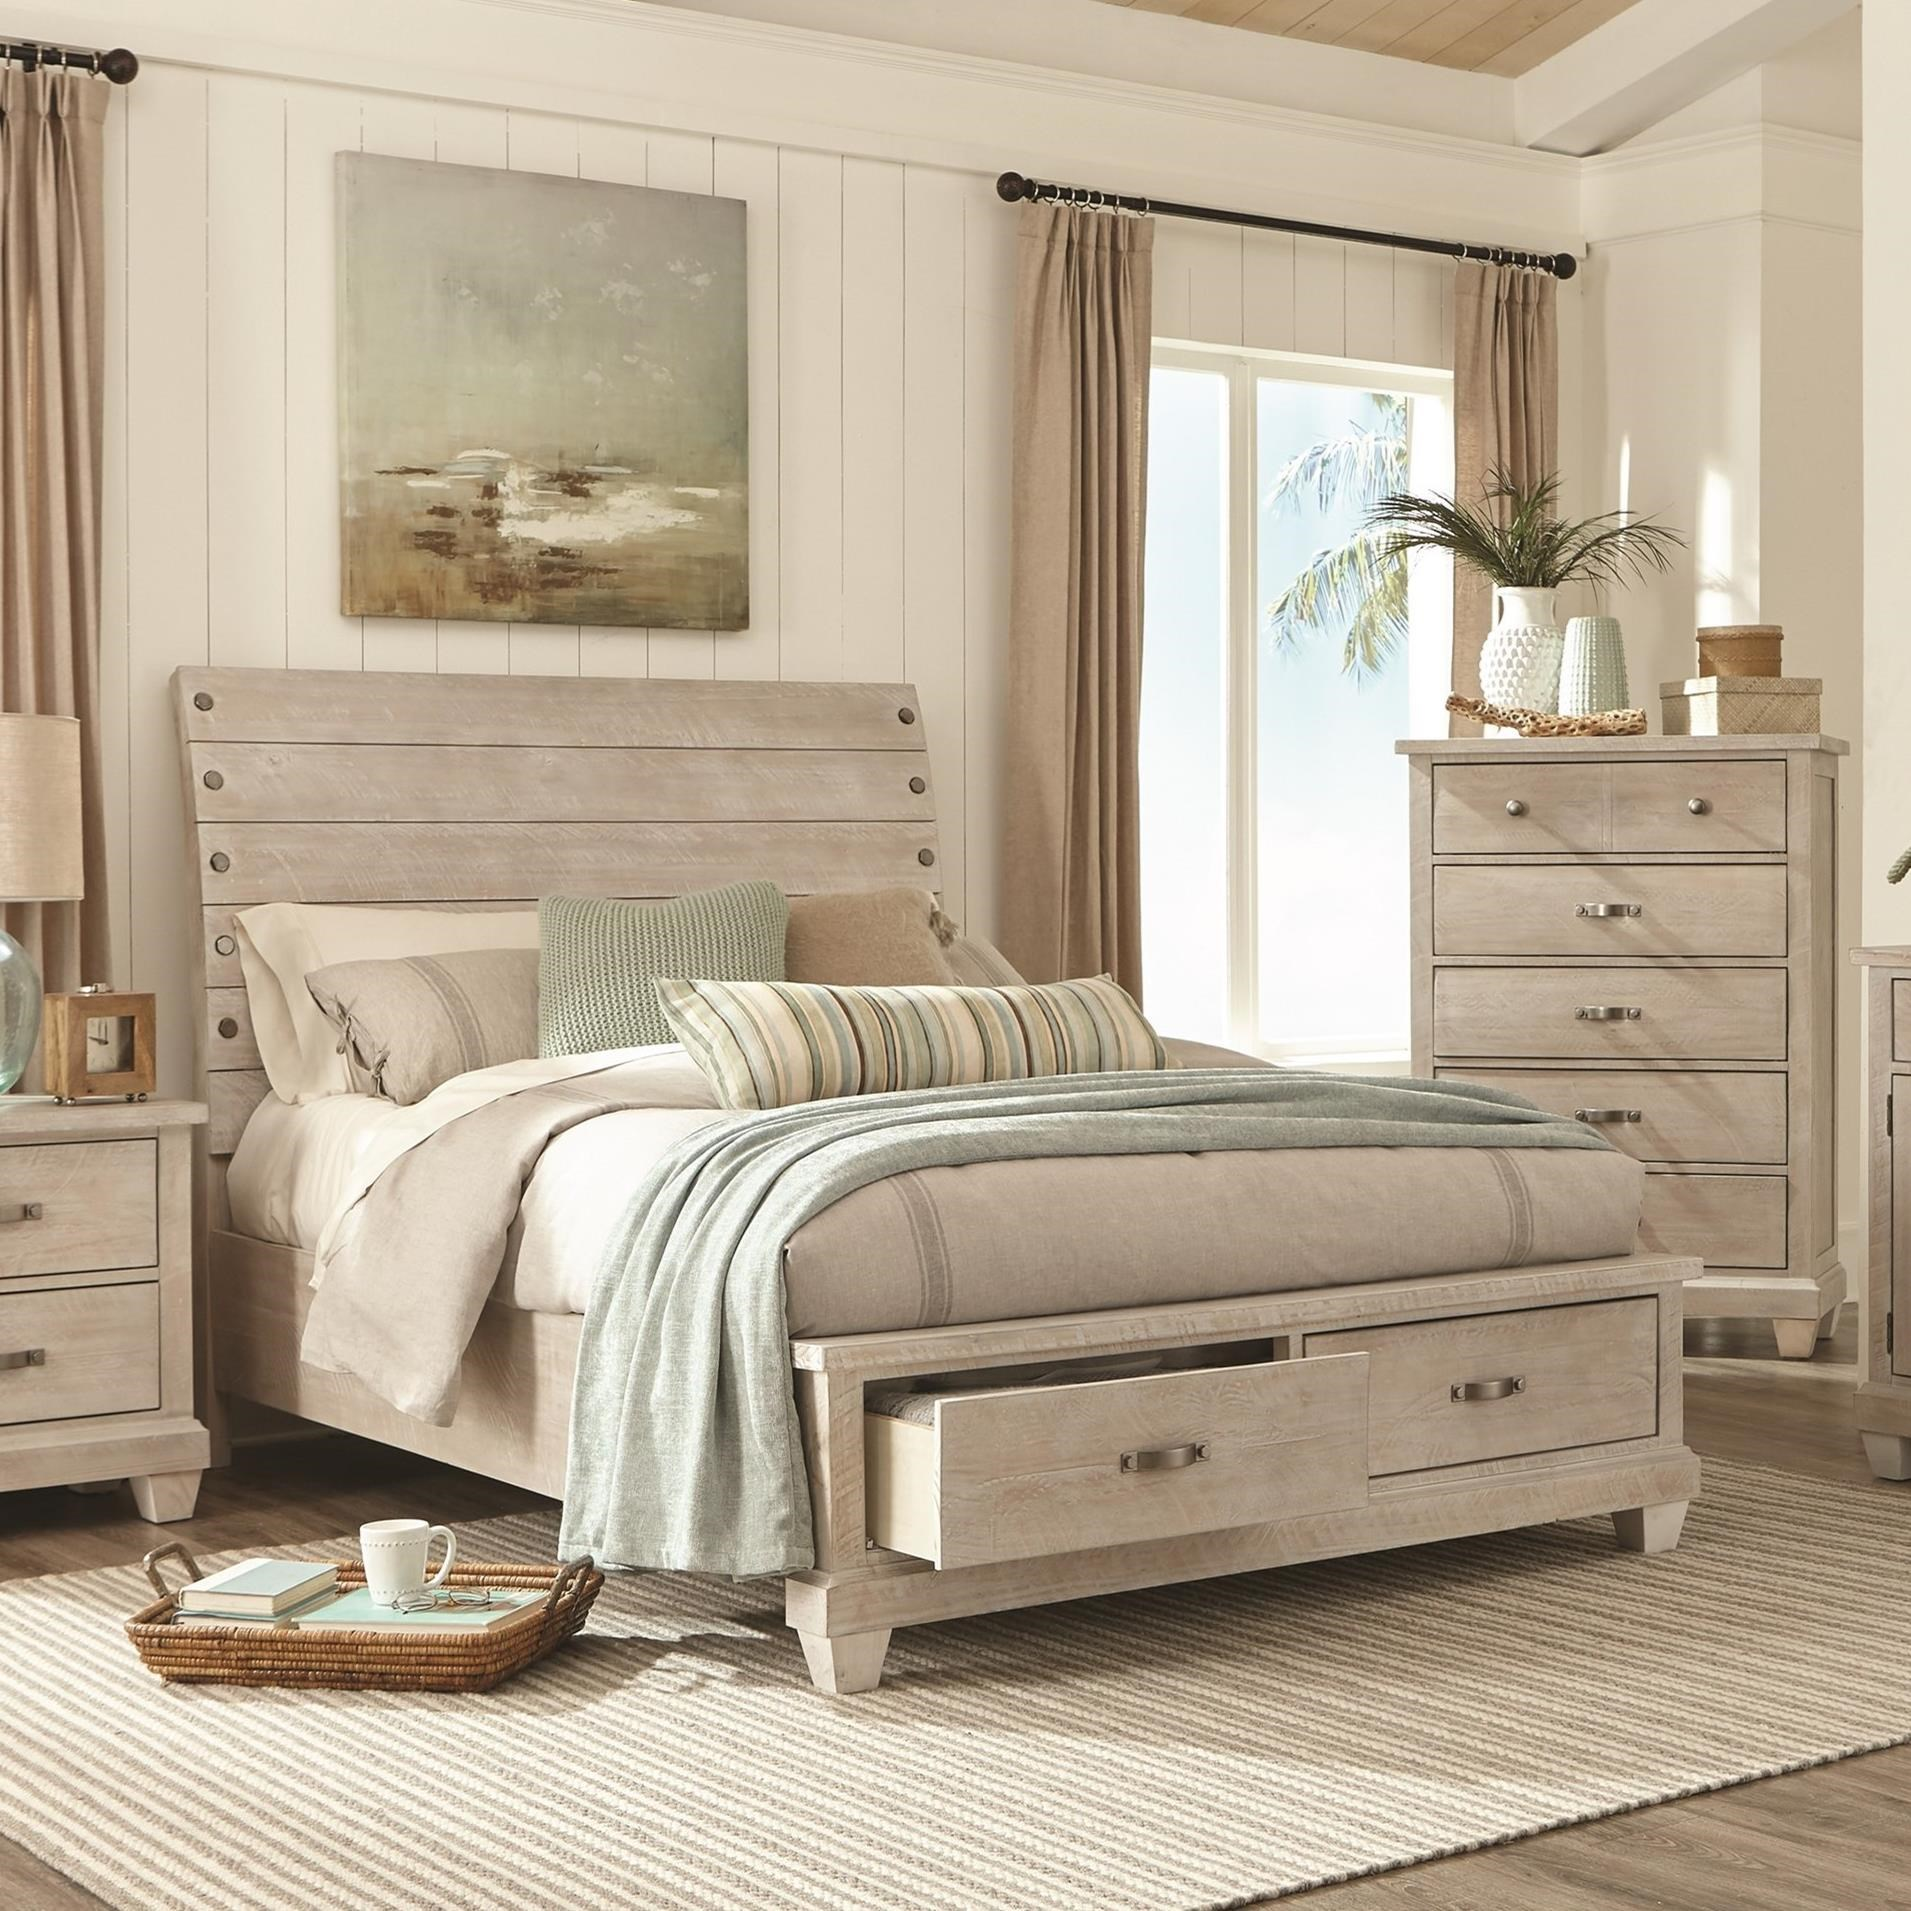 C7131W King Sleigh Bed by Lifestyle at Beck's Furniture